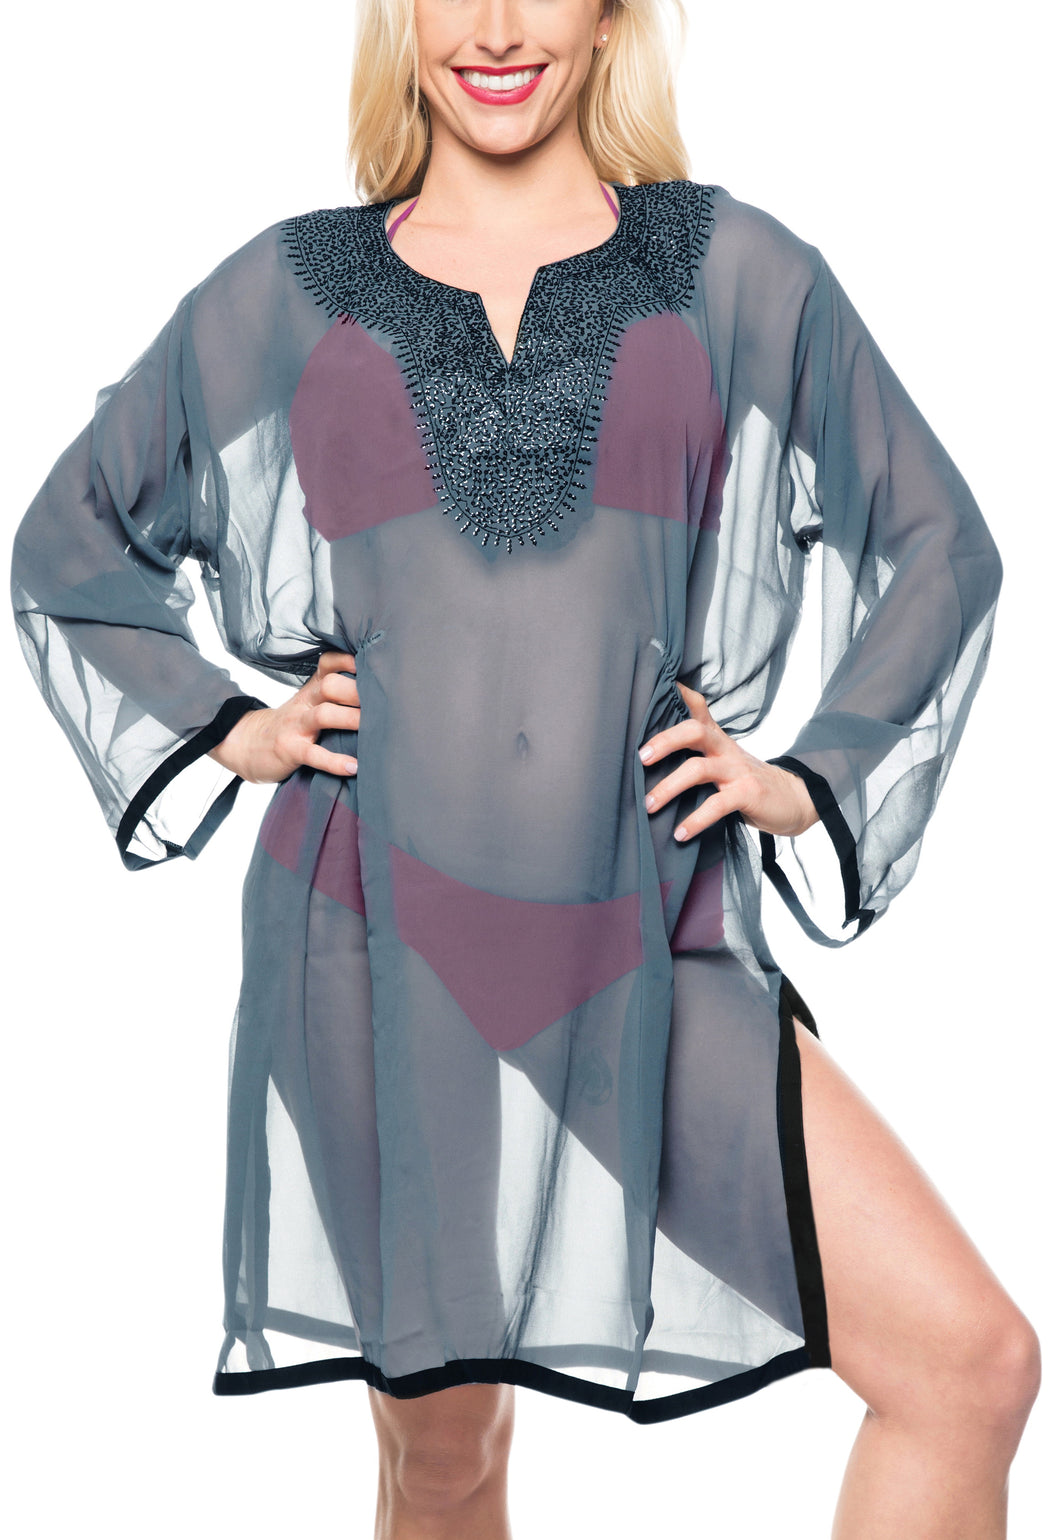 la-leela-swimwear-chiffon-solid-bikini-cover-up-swimsuit-osfm-8-18-m-xl-grey_592